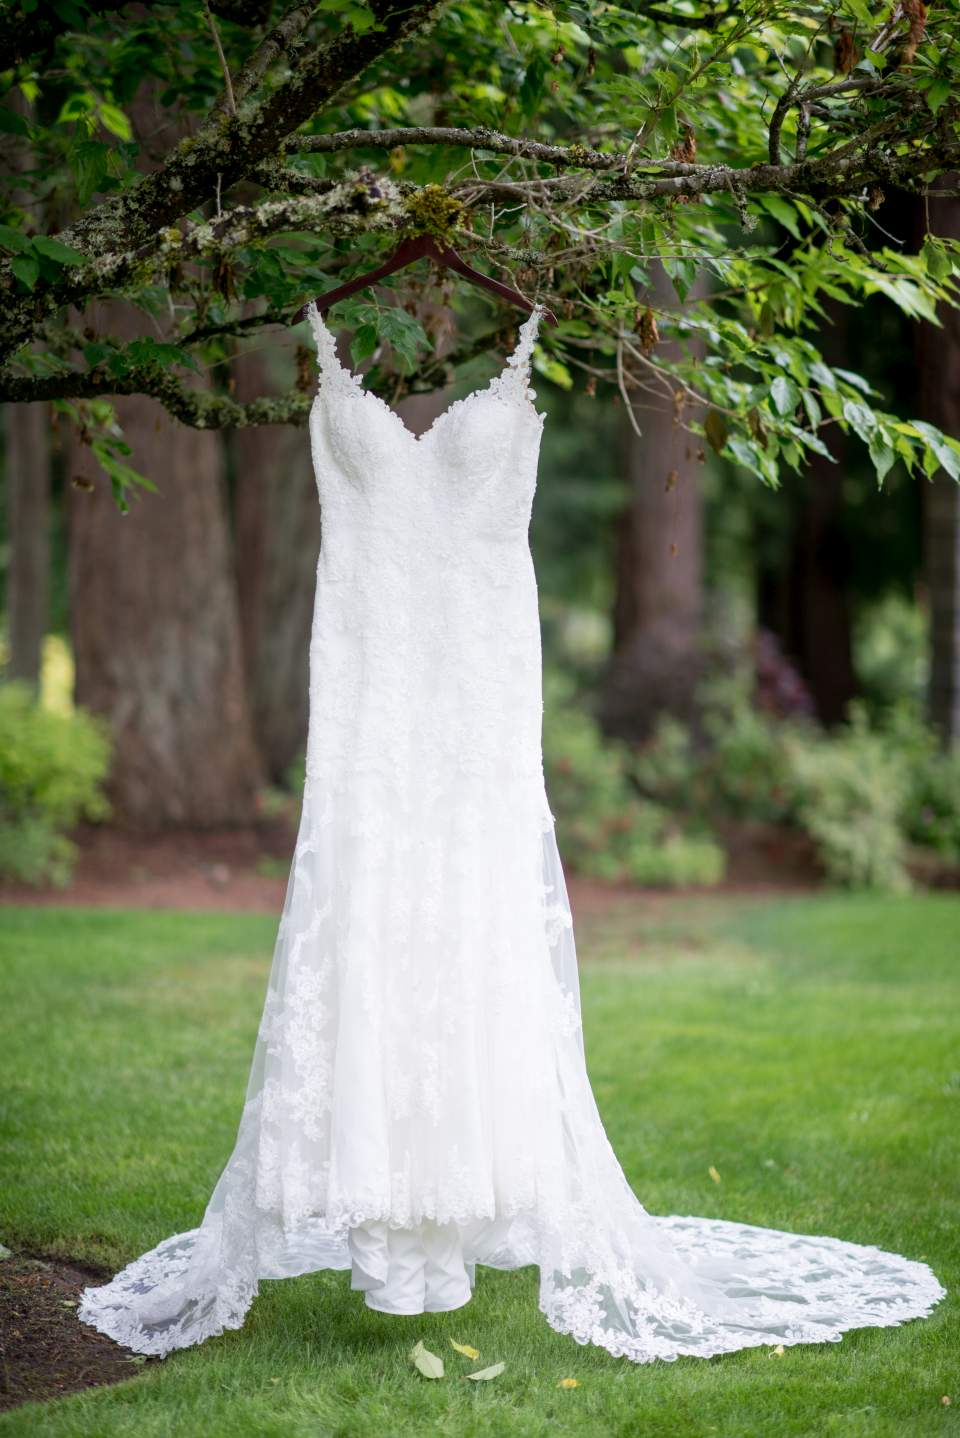 beautiful lace wedding dress hanging in garden